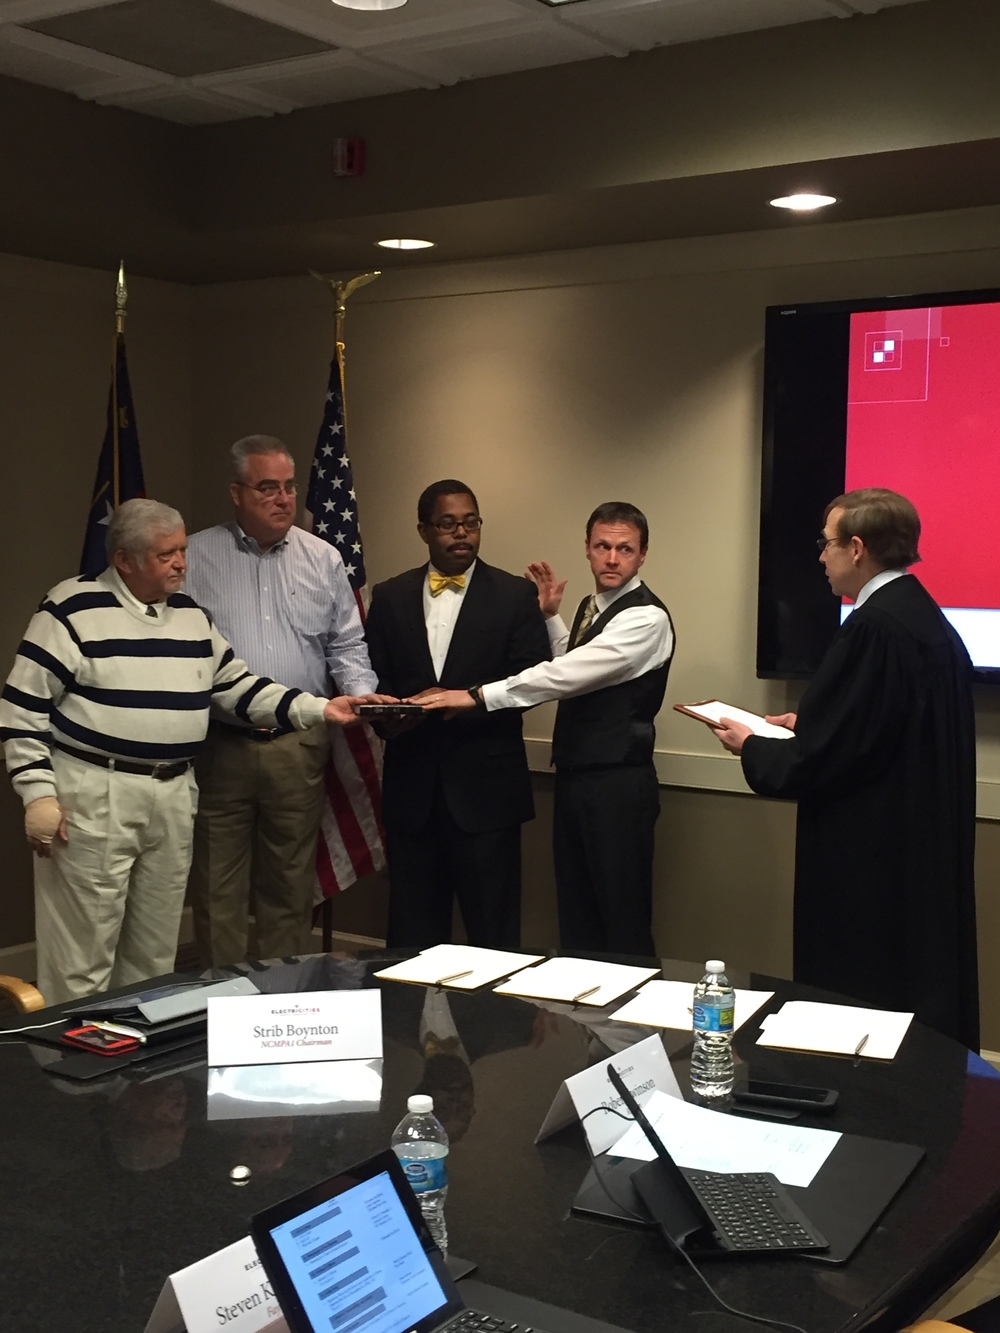 Swearing in new board members of Electricities of North Carolina, 29 January 2016.